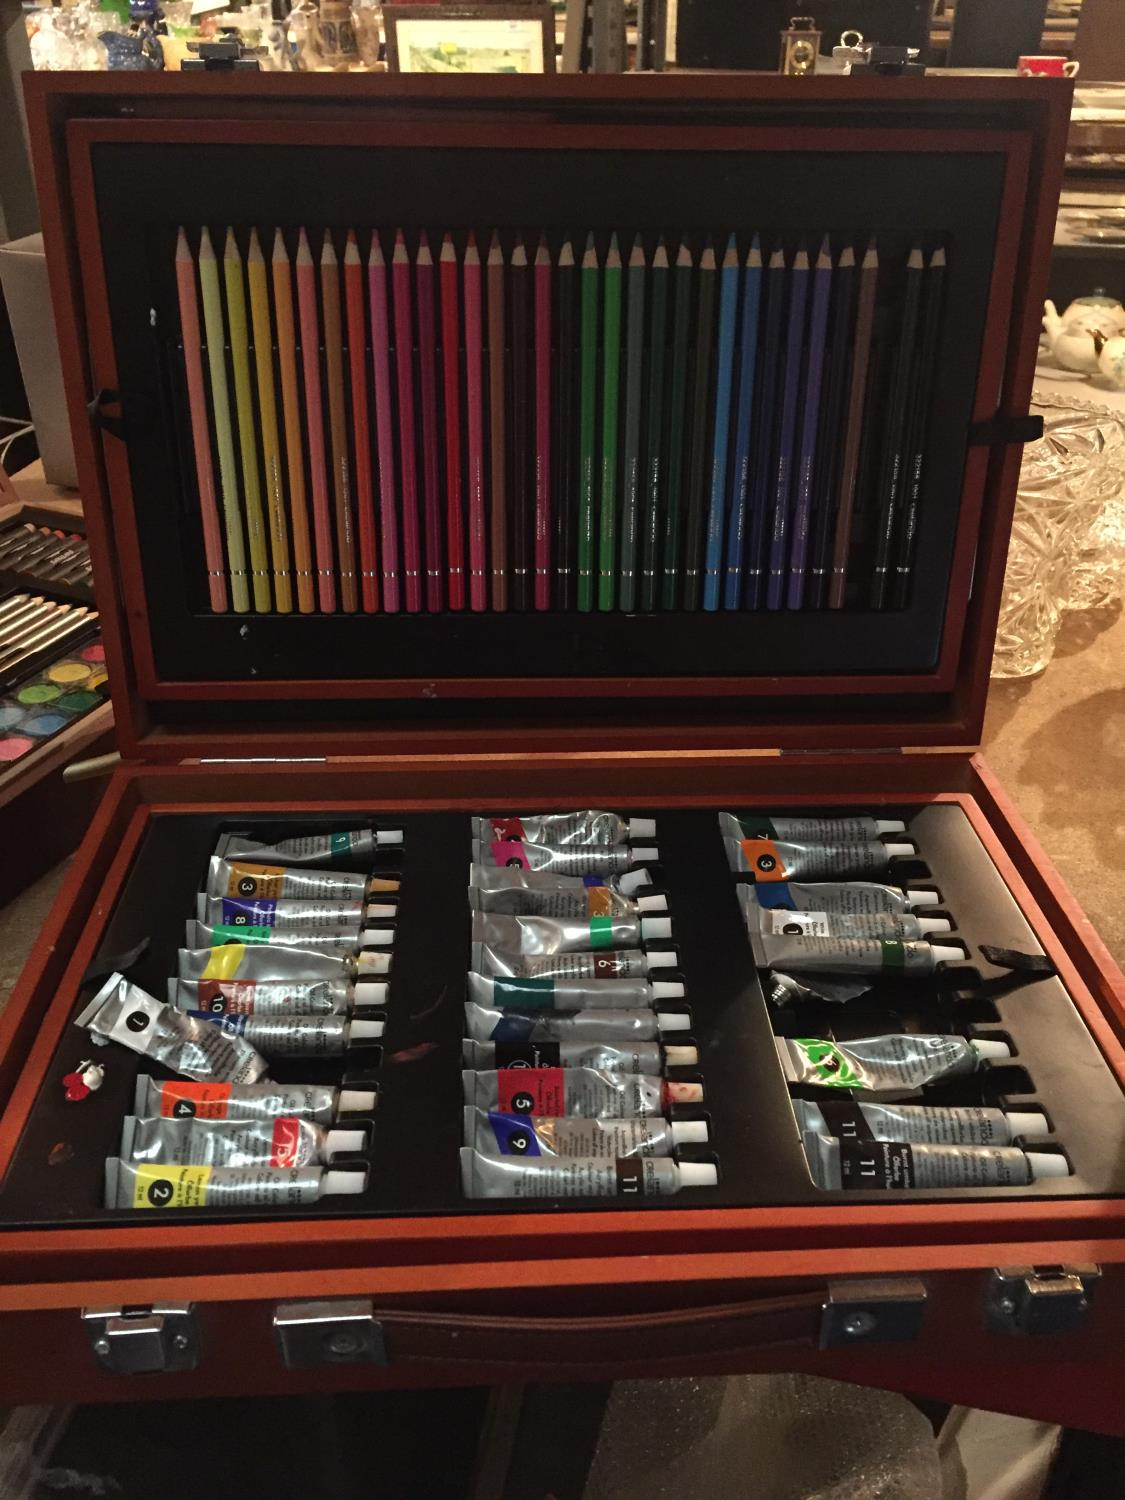 TWO CASES OF ART SUPPLIES TO INCLUDE FELT TIPS, PENCILS, OIL PAINTS ETC - Image 3 of 12